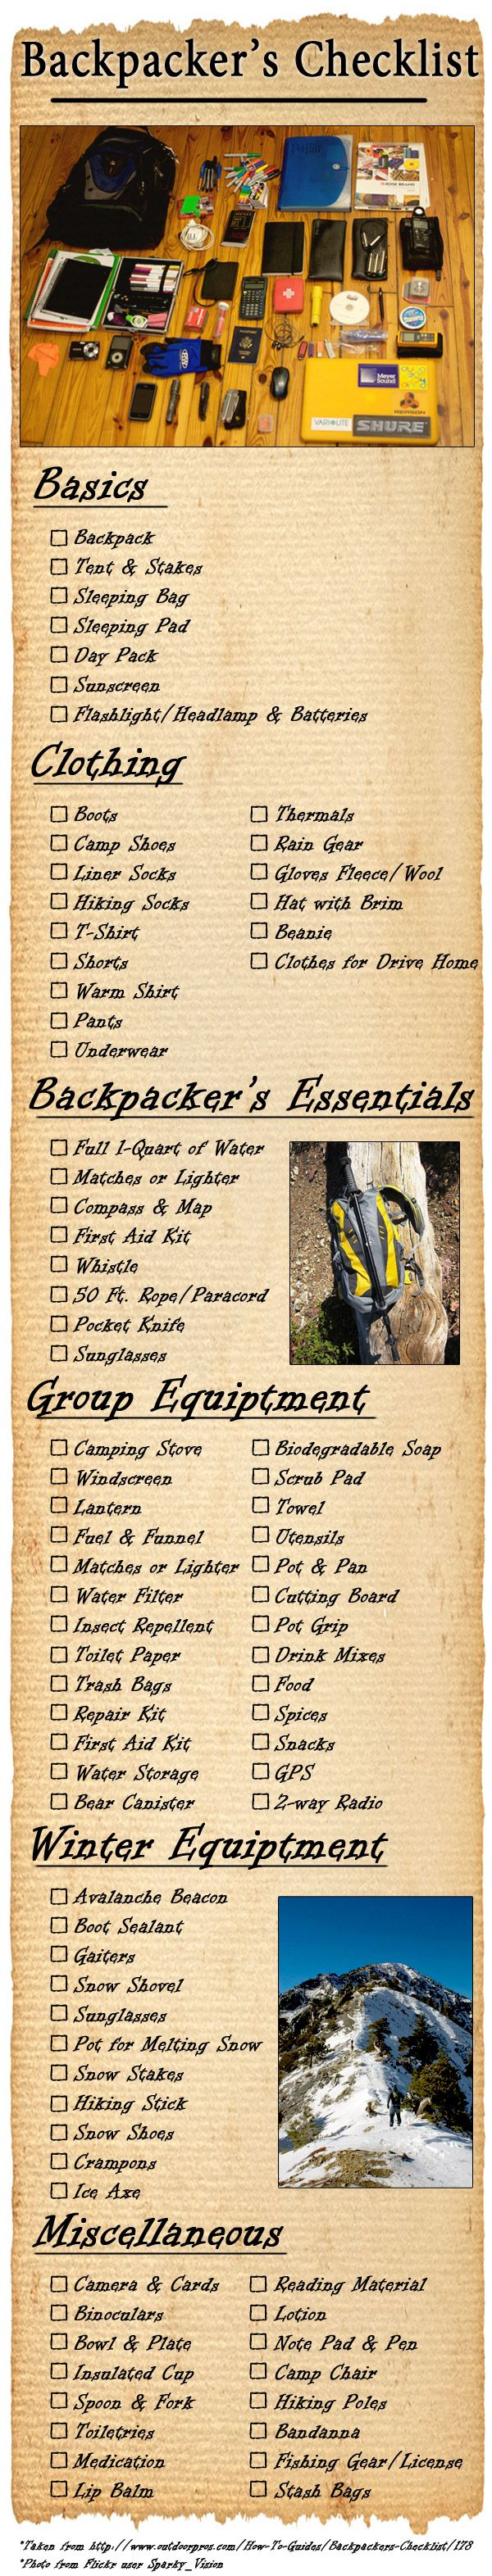 Backpackers Checklist outdoors diy tutorials hiking checklist infographic infograph backpaclers backpacking hikers